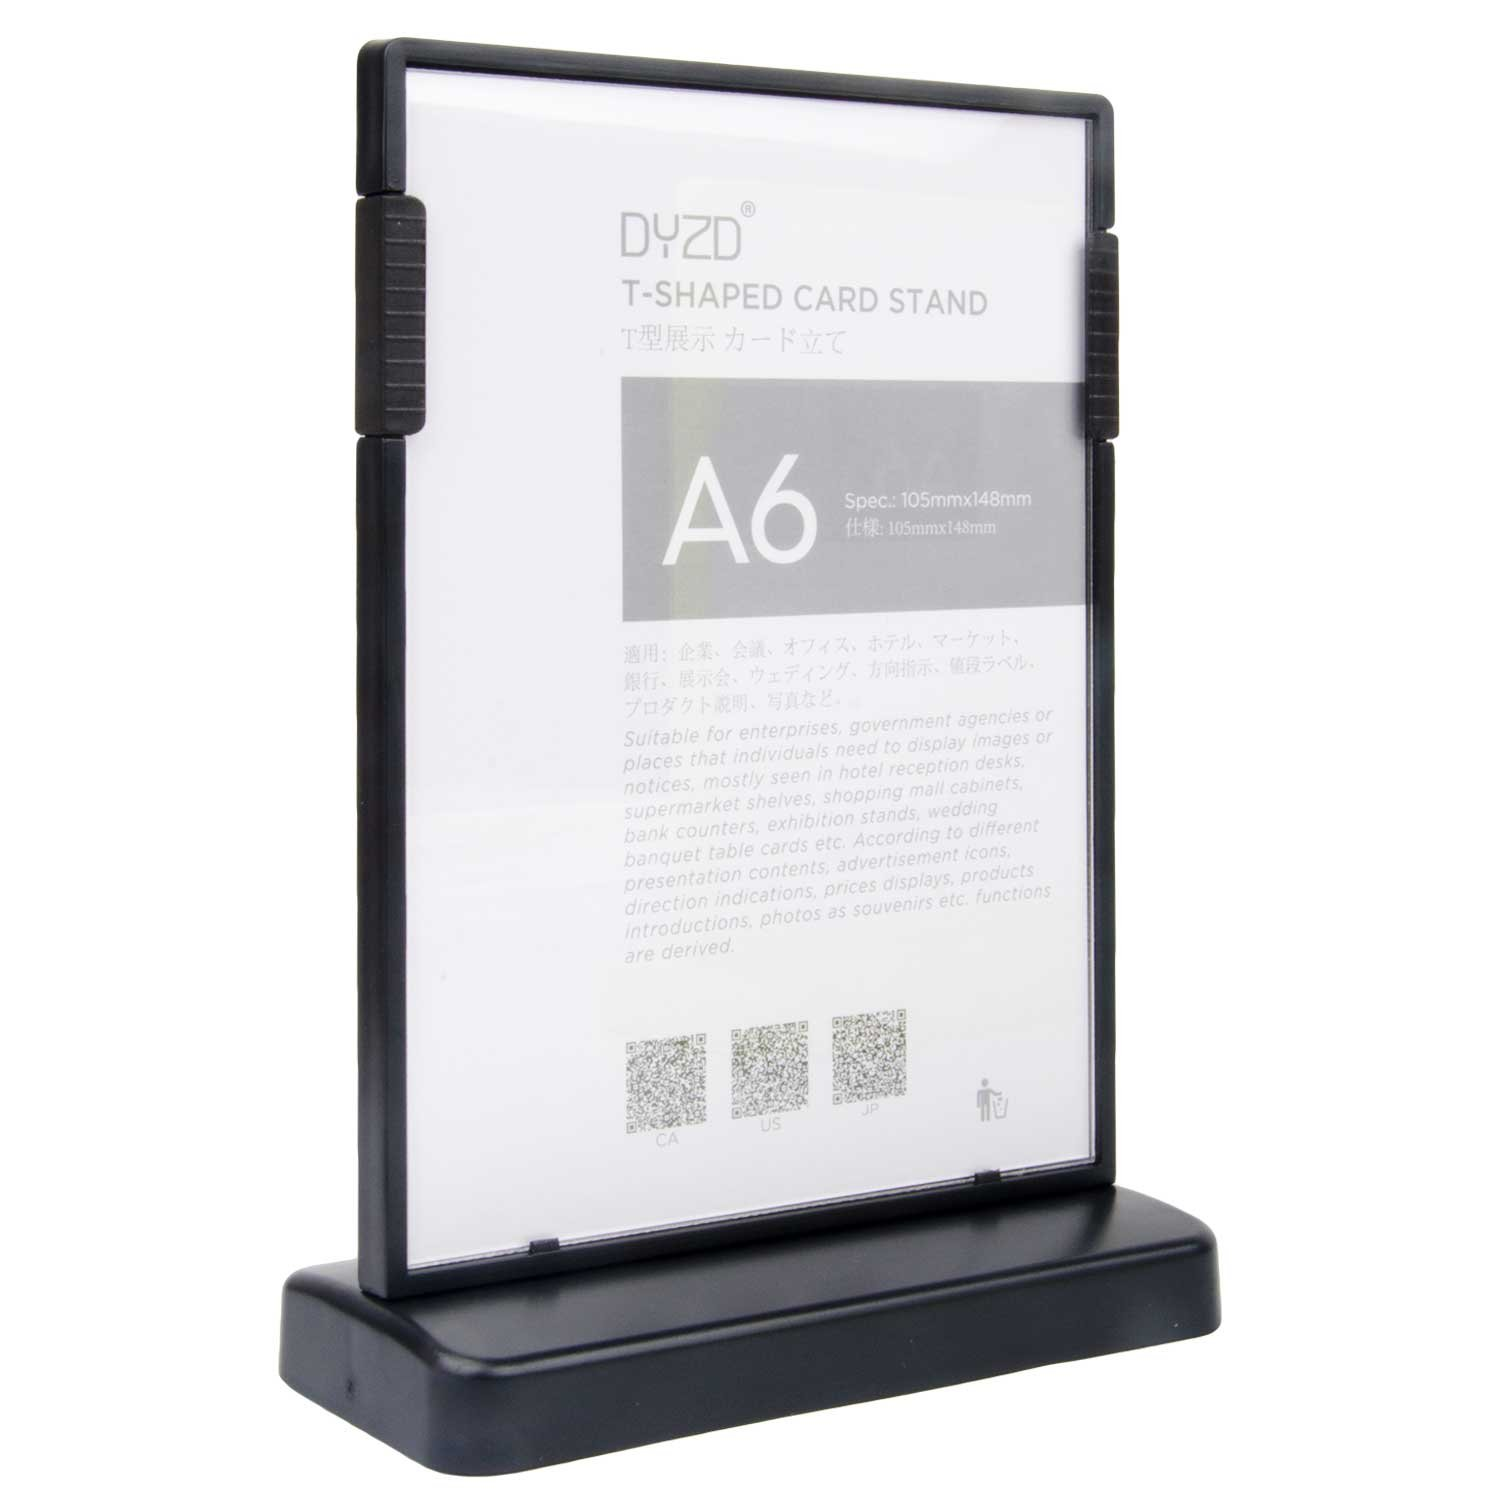 Exhibition Stand Information : Amazon.com : dyzd sign display holder t shaped double sided table